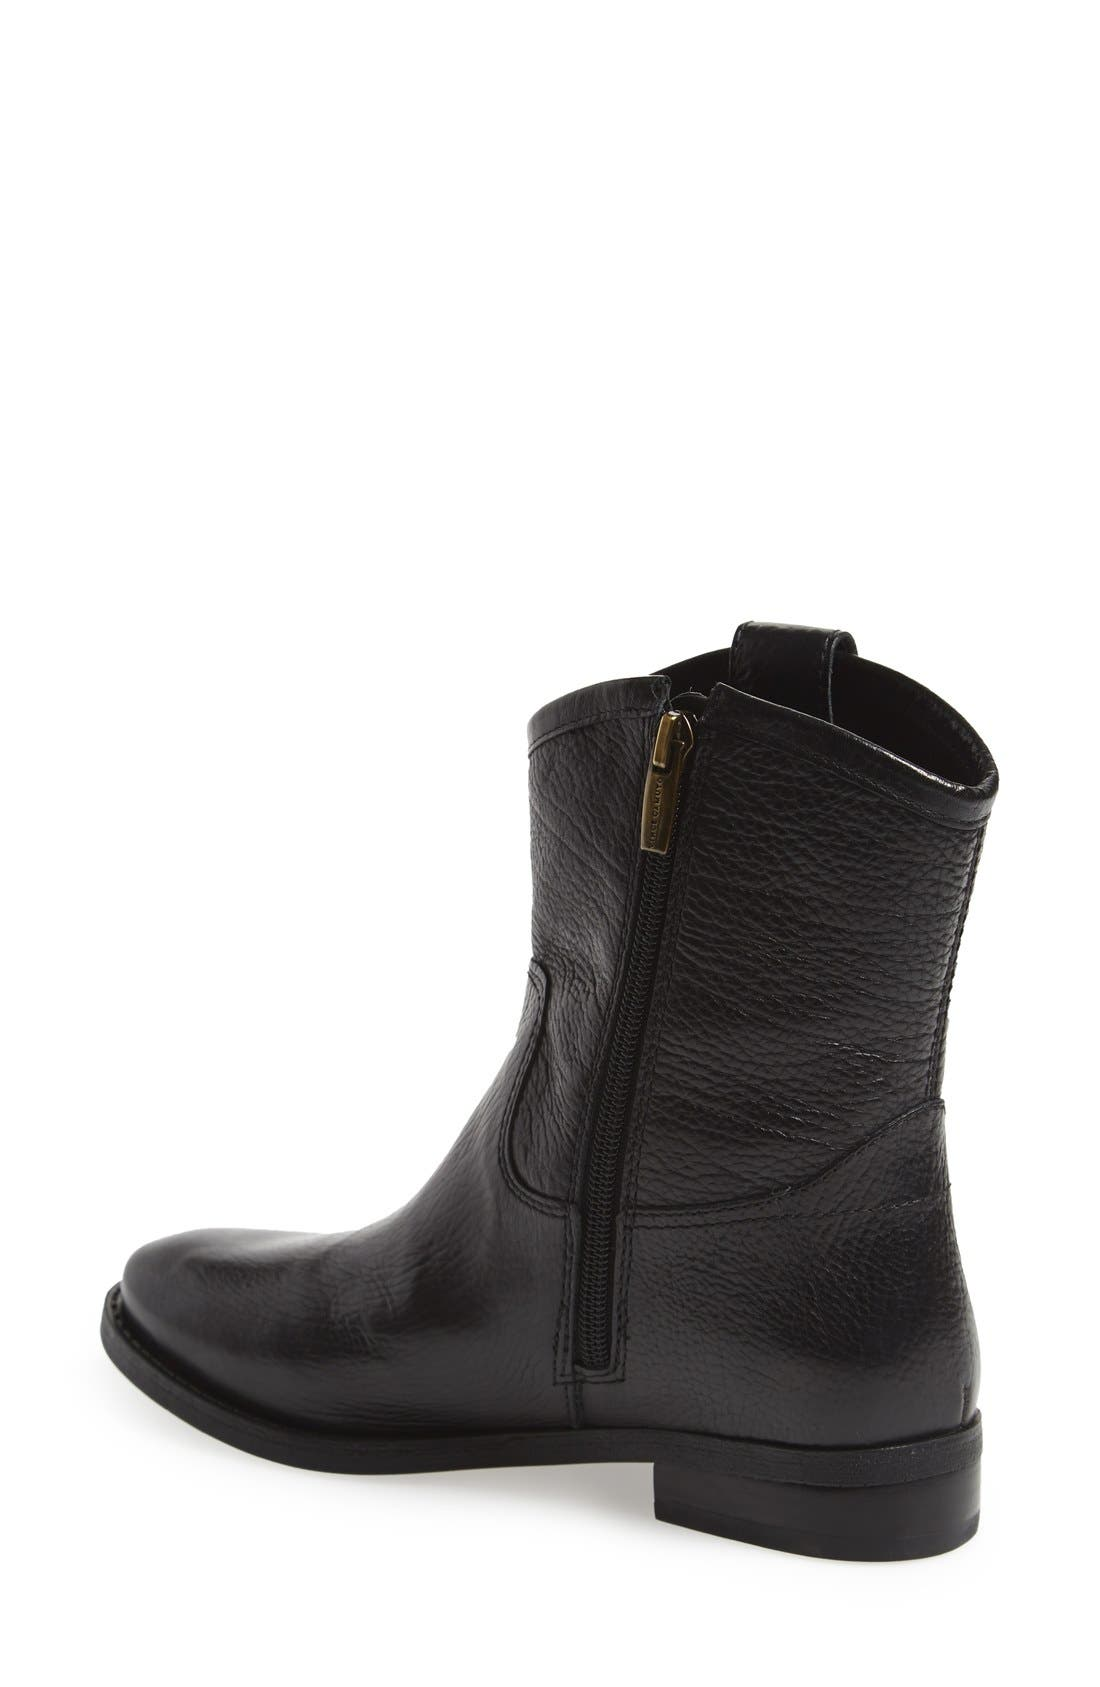 'Payatt' Short Riding Boot,                             Alternate thumbnail 2, color,                             001